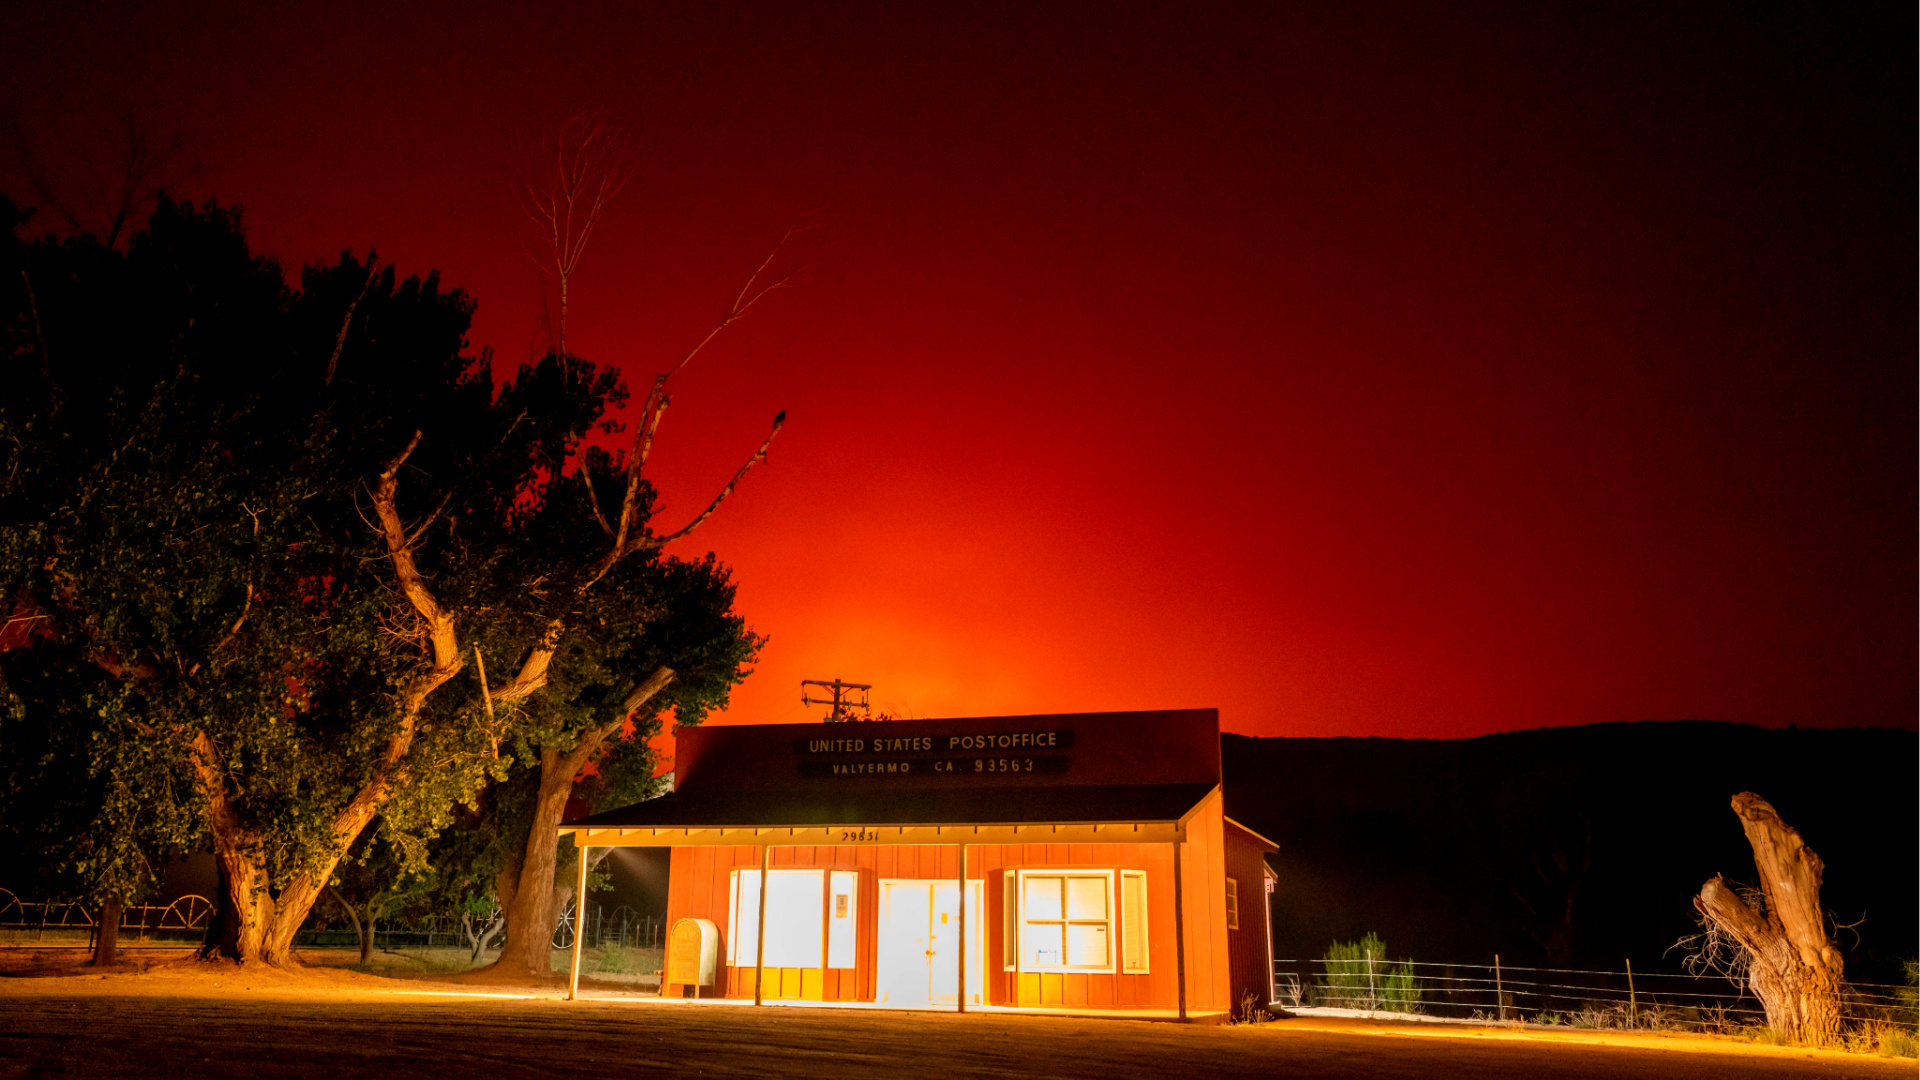 The Bobcat Fire burns above the Valyermo, California, Post Office, Sept. 17, 2020. (Kyle Grillot/AFP via Getty Images)